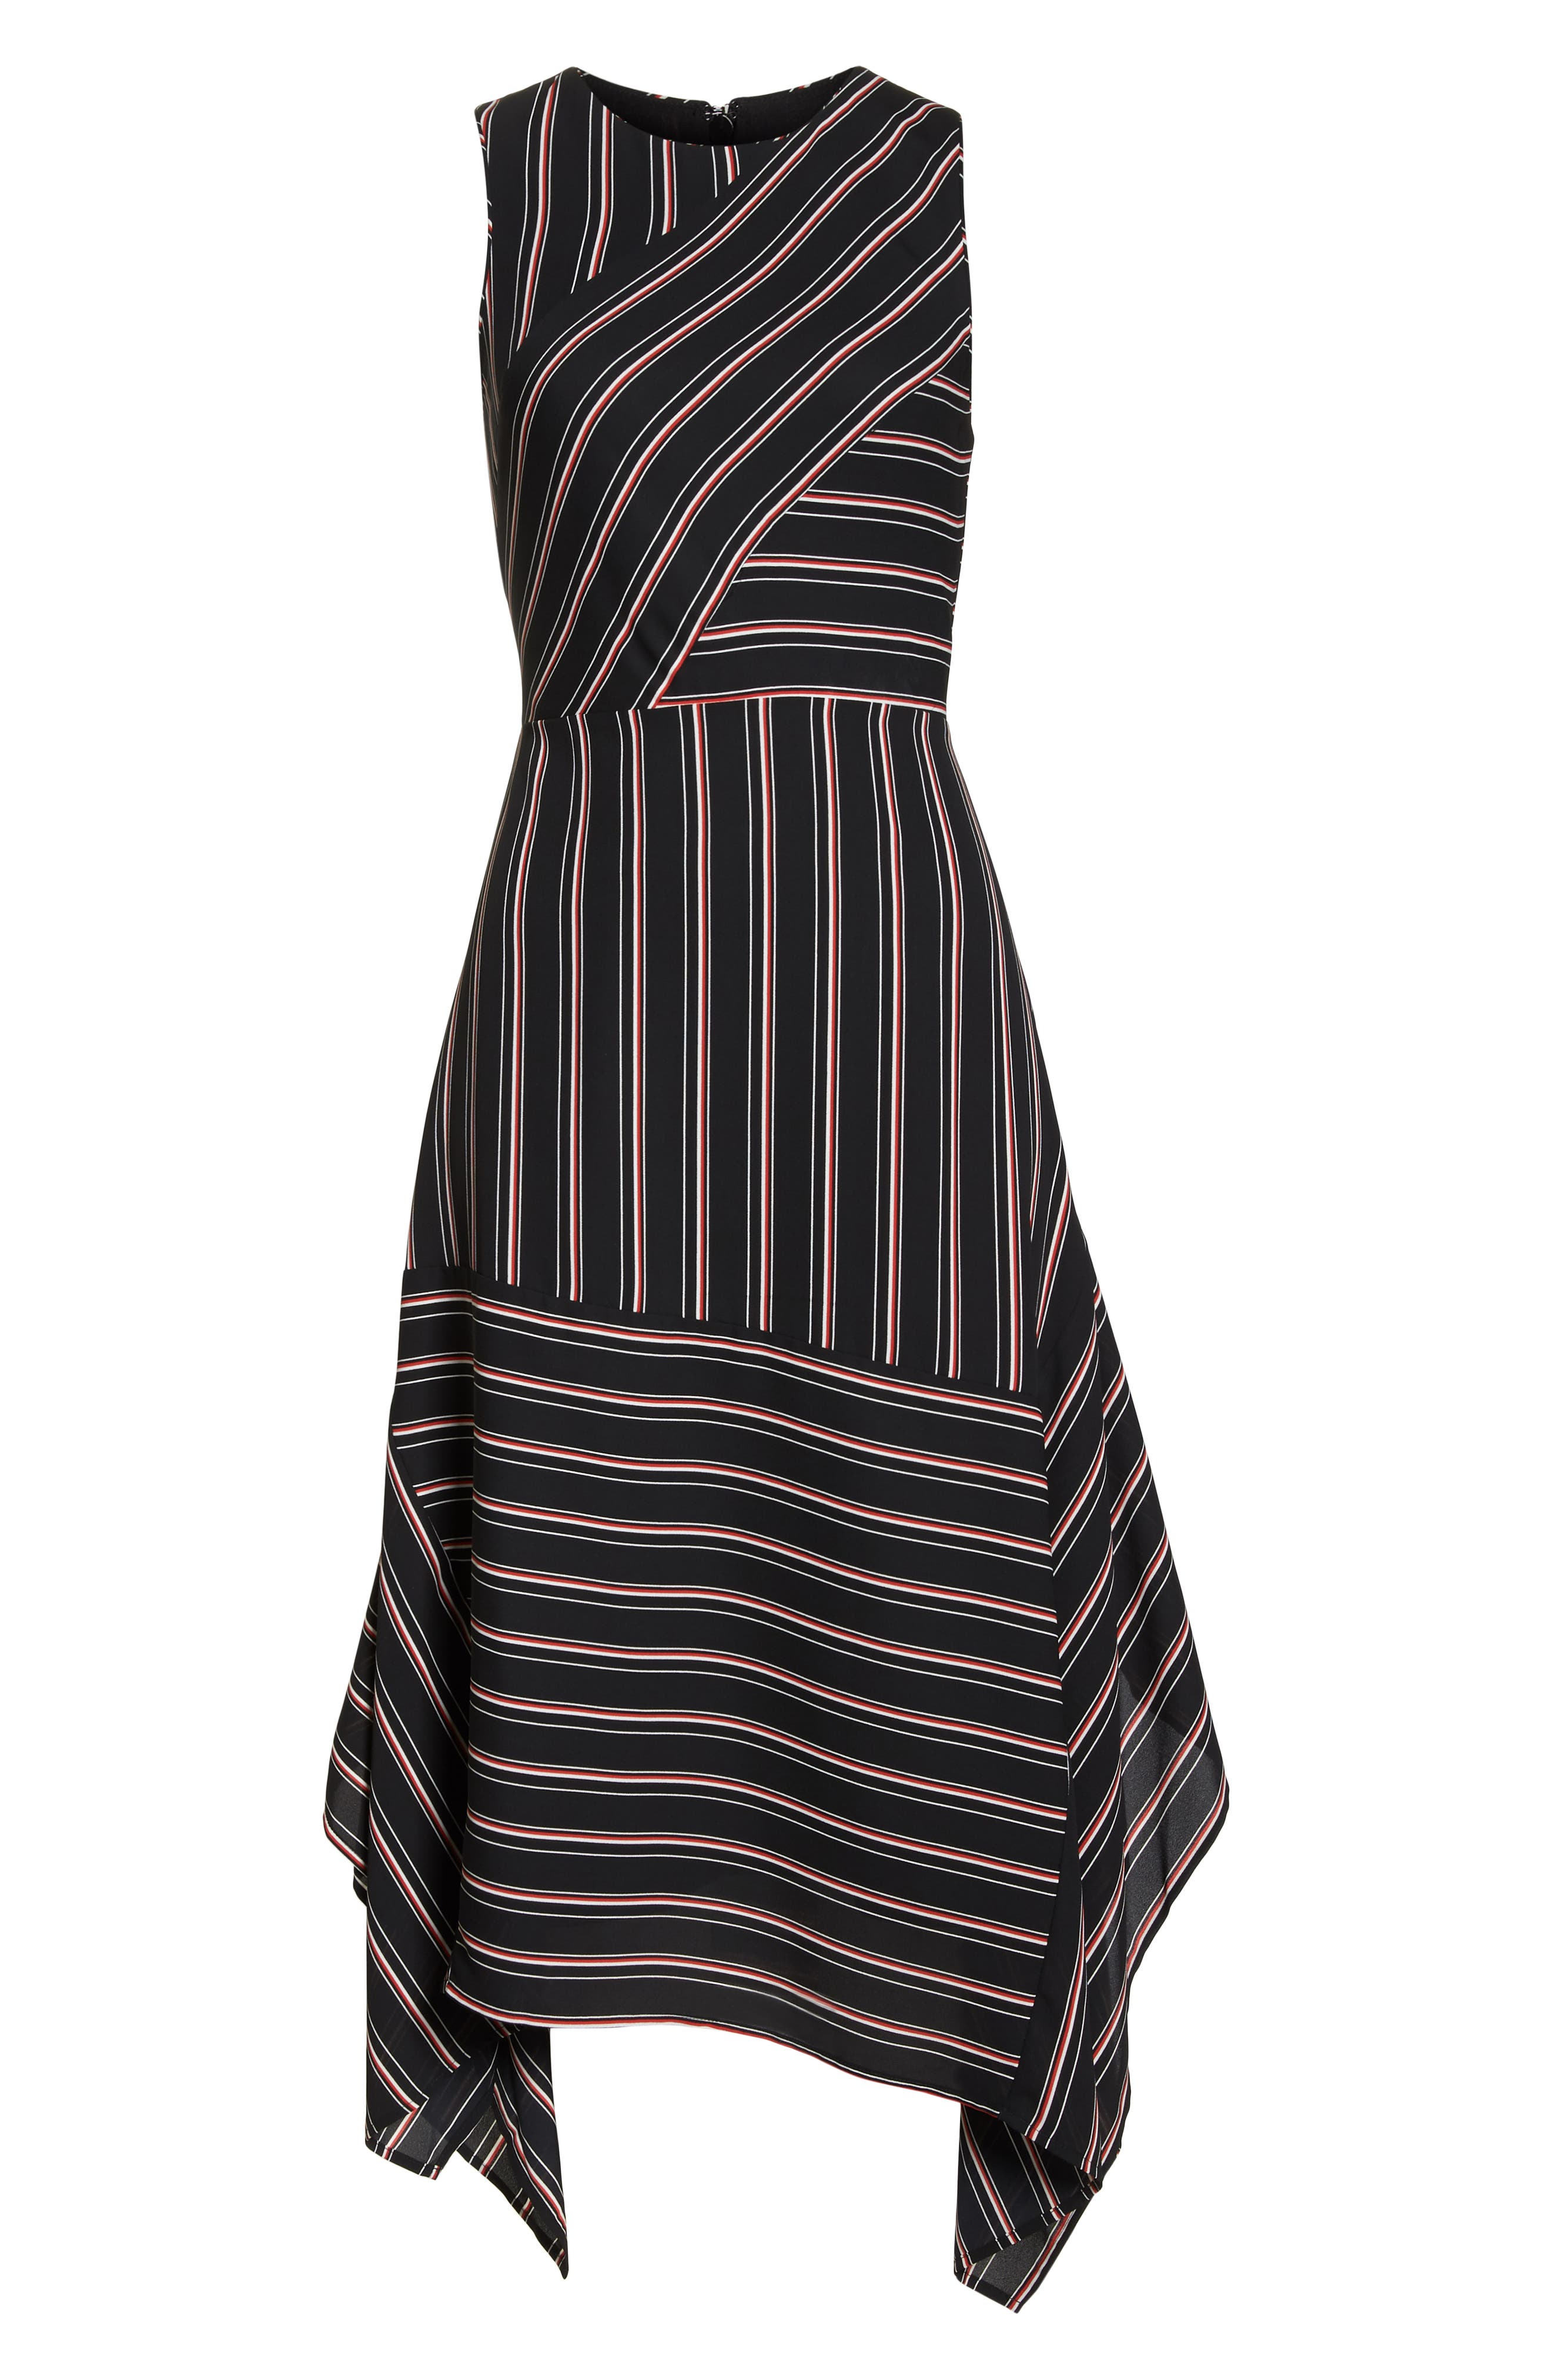 Mix Stripe Midi Dress,                             Alternate thumbnail 7, color,                             BLACK STRIPE MIX COMBO